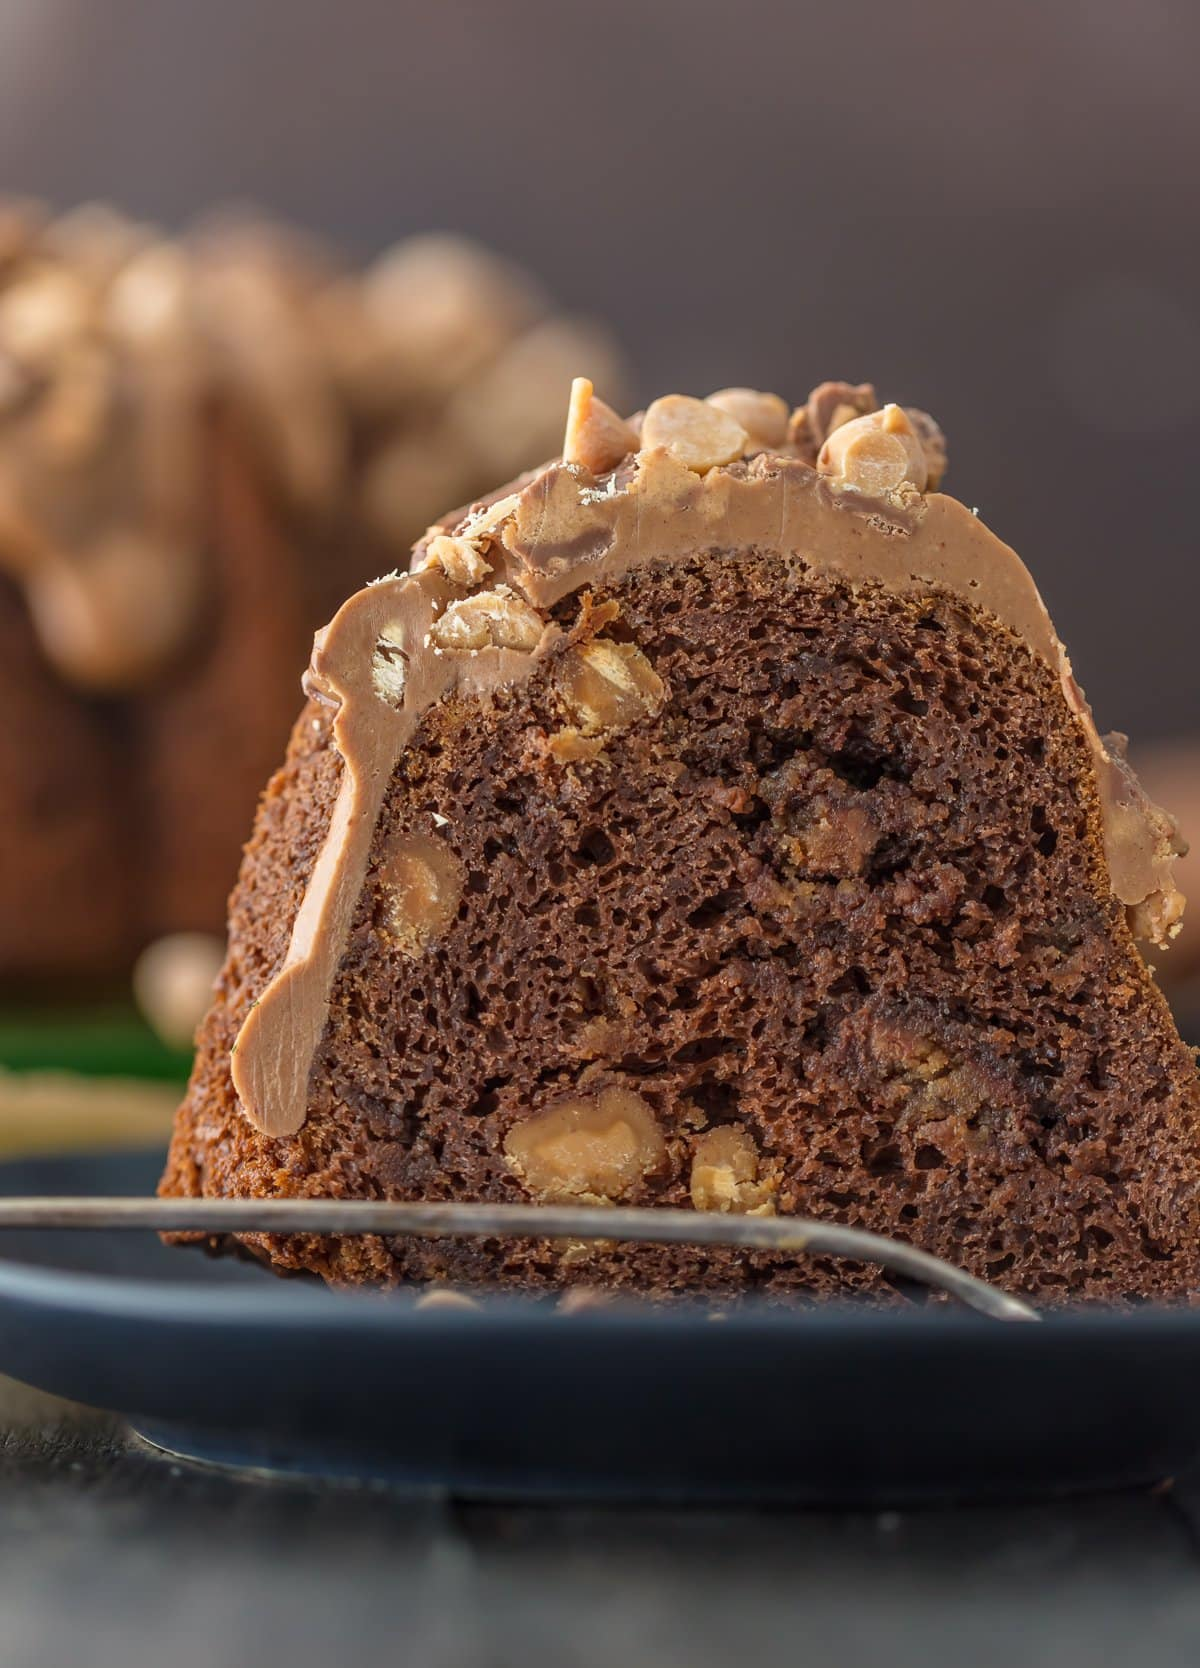 CHOCOLATE PEANUT BUTTER CUP POUND CAKE is the ultimate bundt cake recipe! Topped with a decadent peanut butter icing, this indulgent cake is perfect for the holidays!